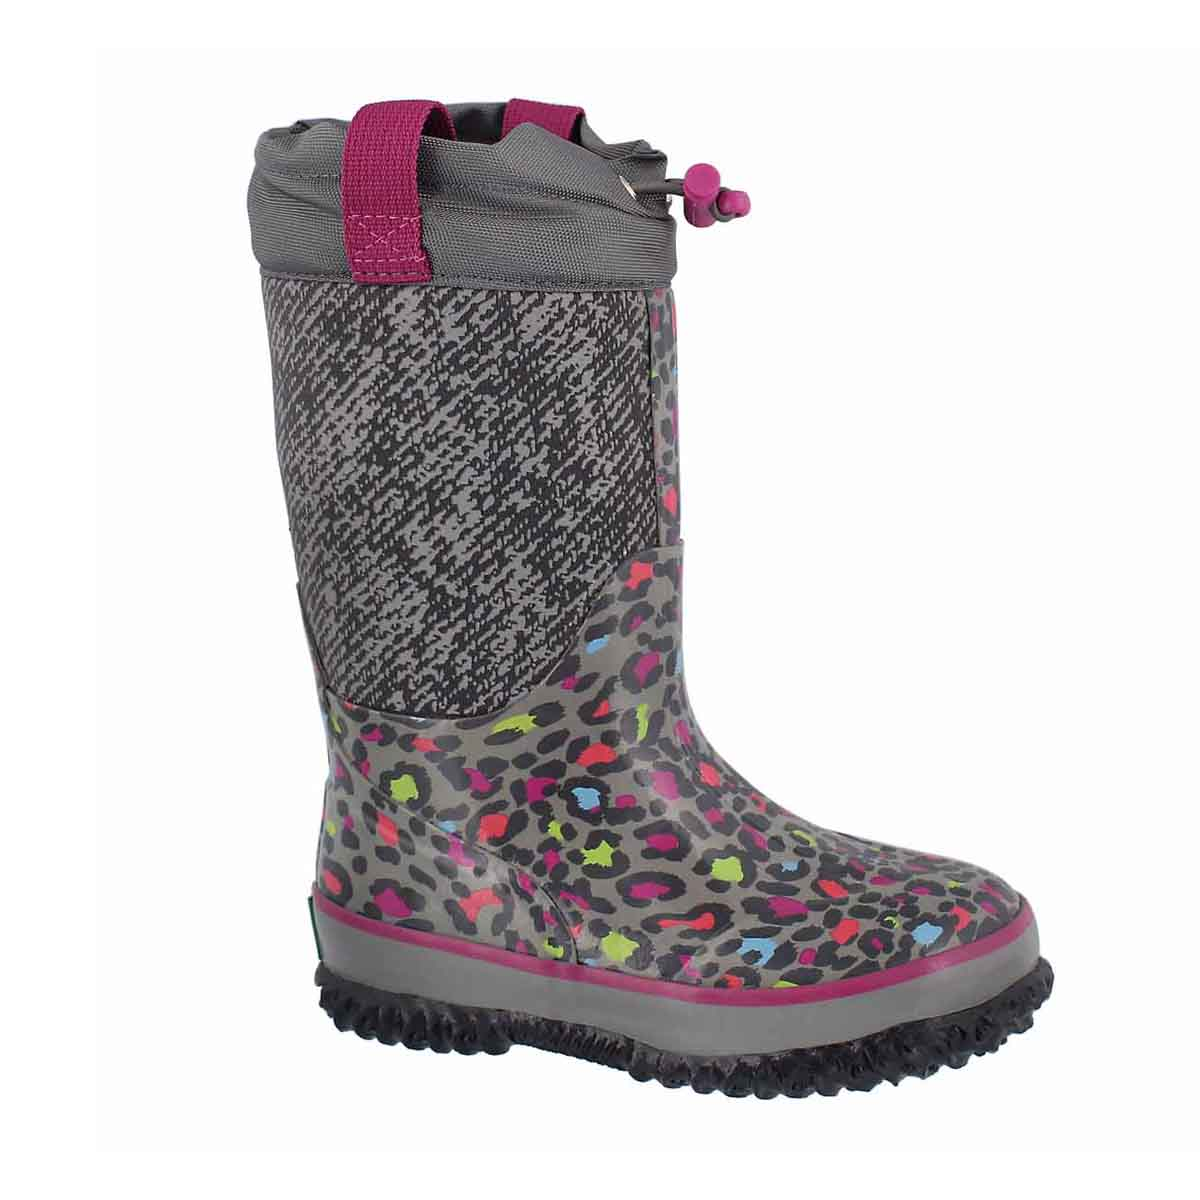 Girls' CLOUDBURST leopard pullon wp winter boots